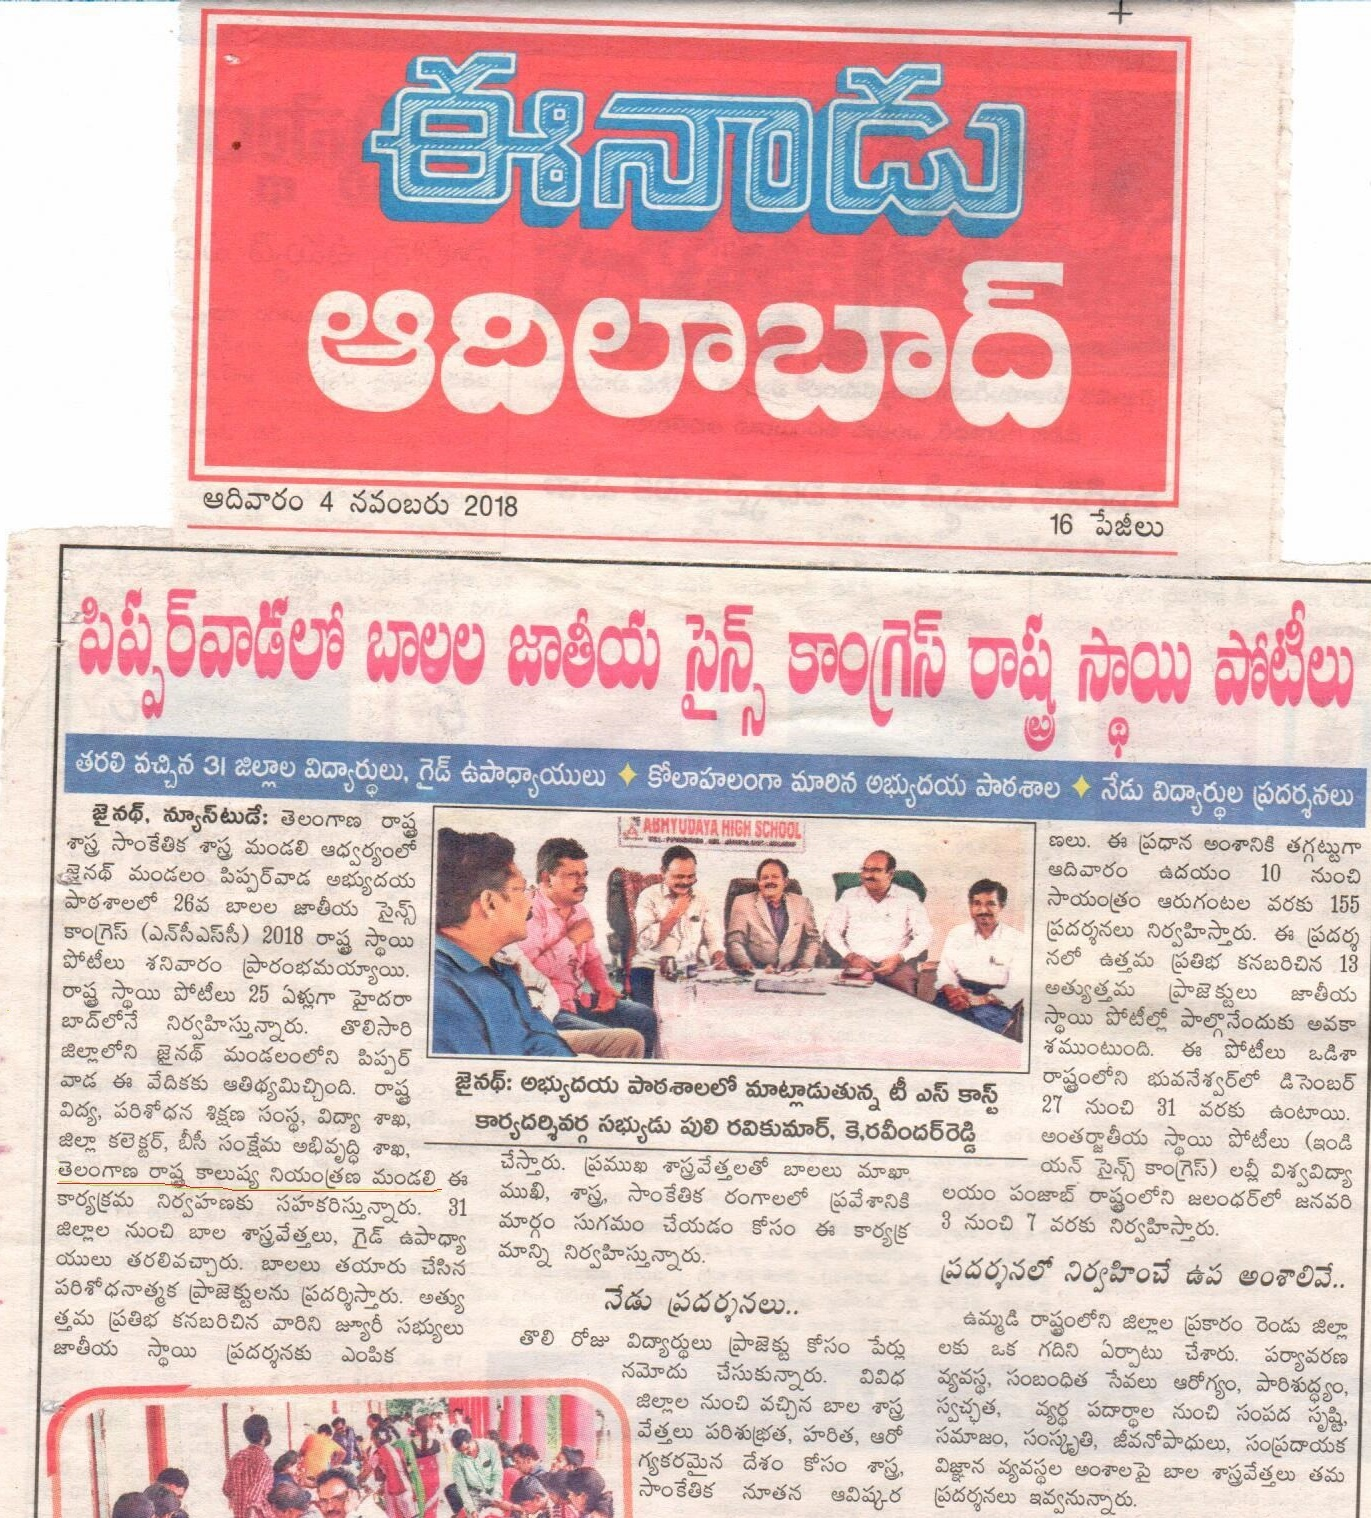 State Level Event of 26th NCSC 2018 Press Clipping image3